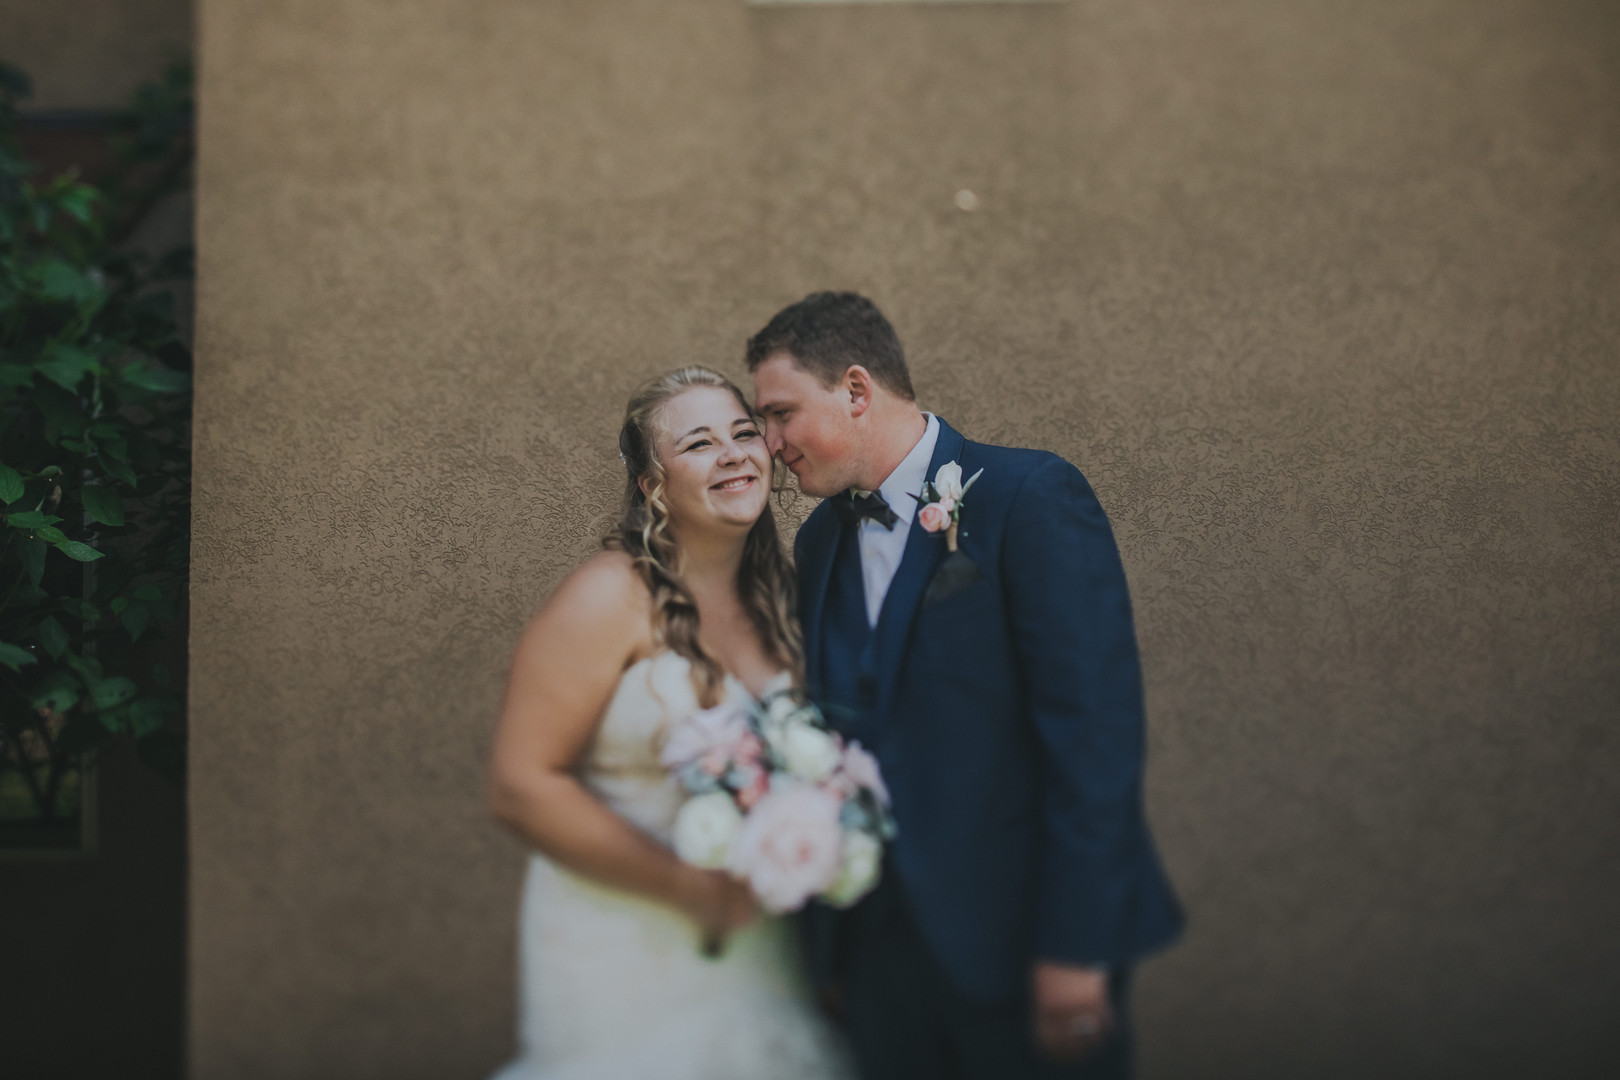 A groom nuzzles a smiling bride on the cheek at an intimate wedding in Stevens Point Wisconsin